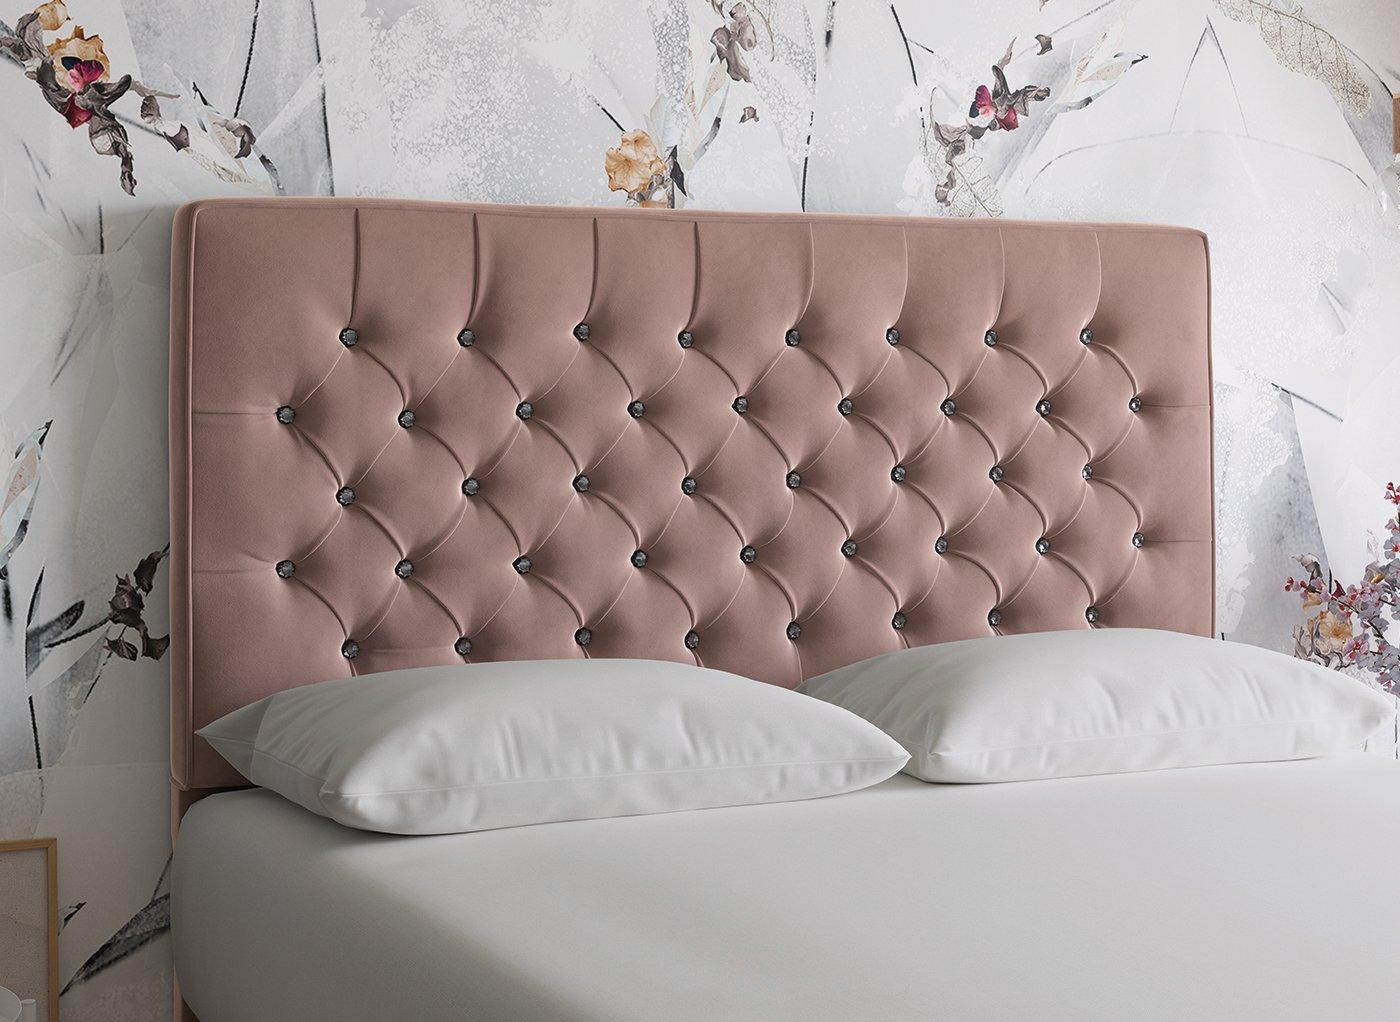 Florentine D Full Height H/B Plush Pink 4'6 Double